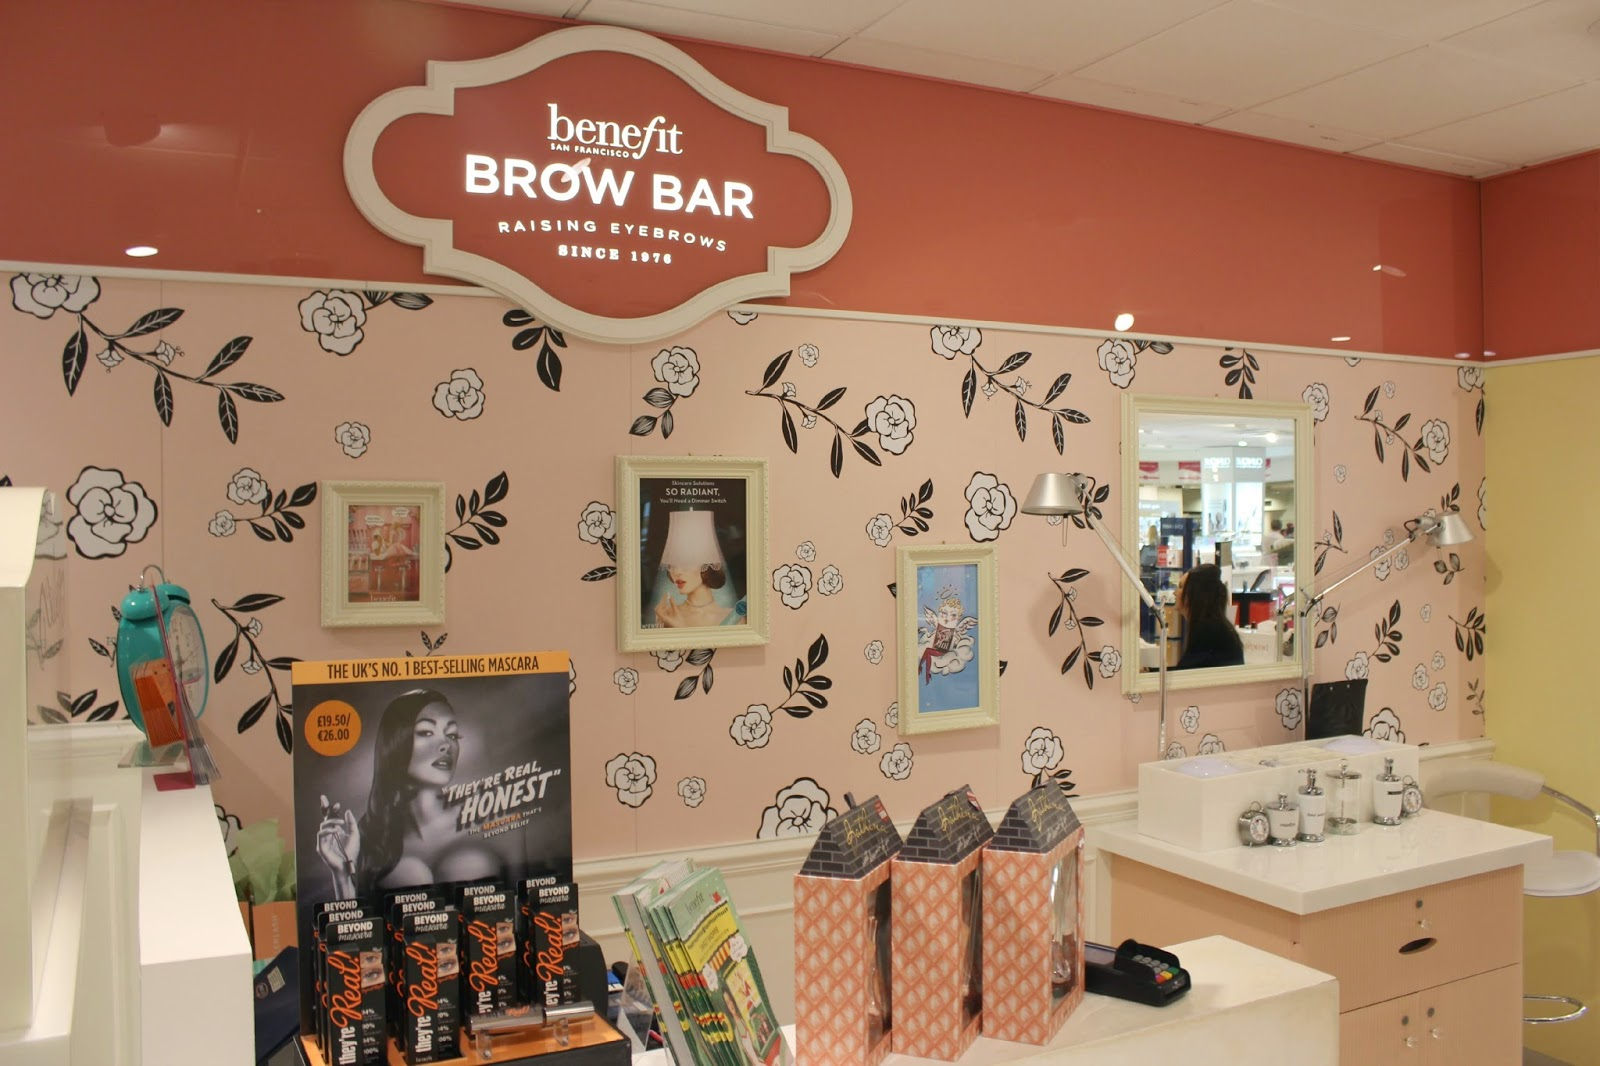 Benefit-Brow-Bar-Plymouth